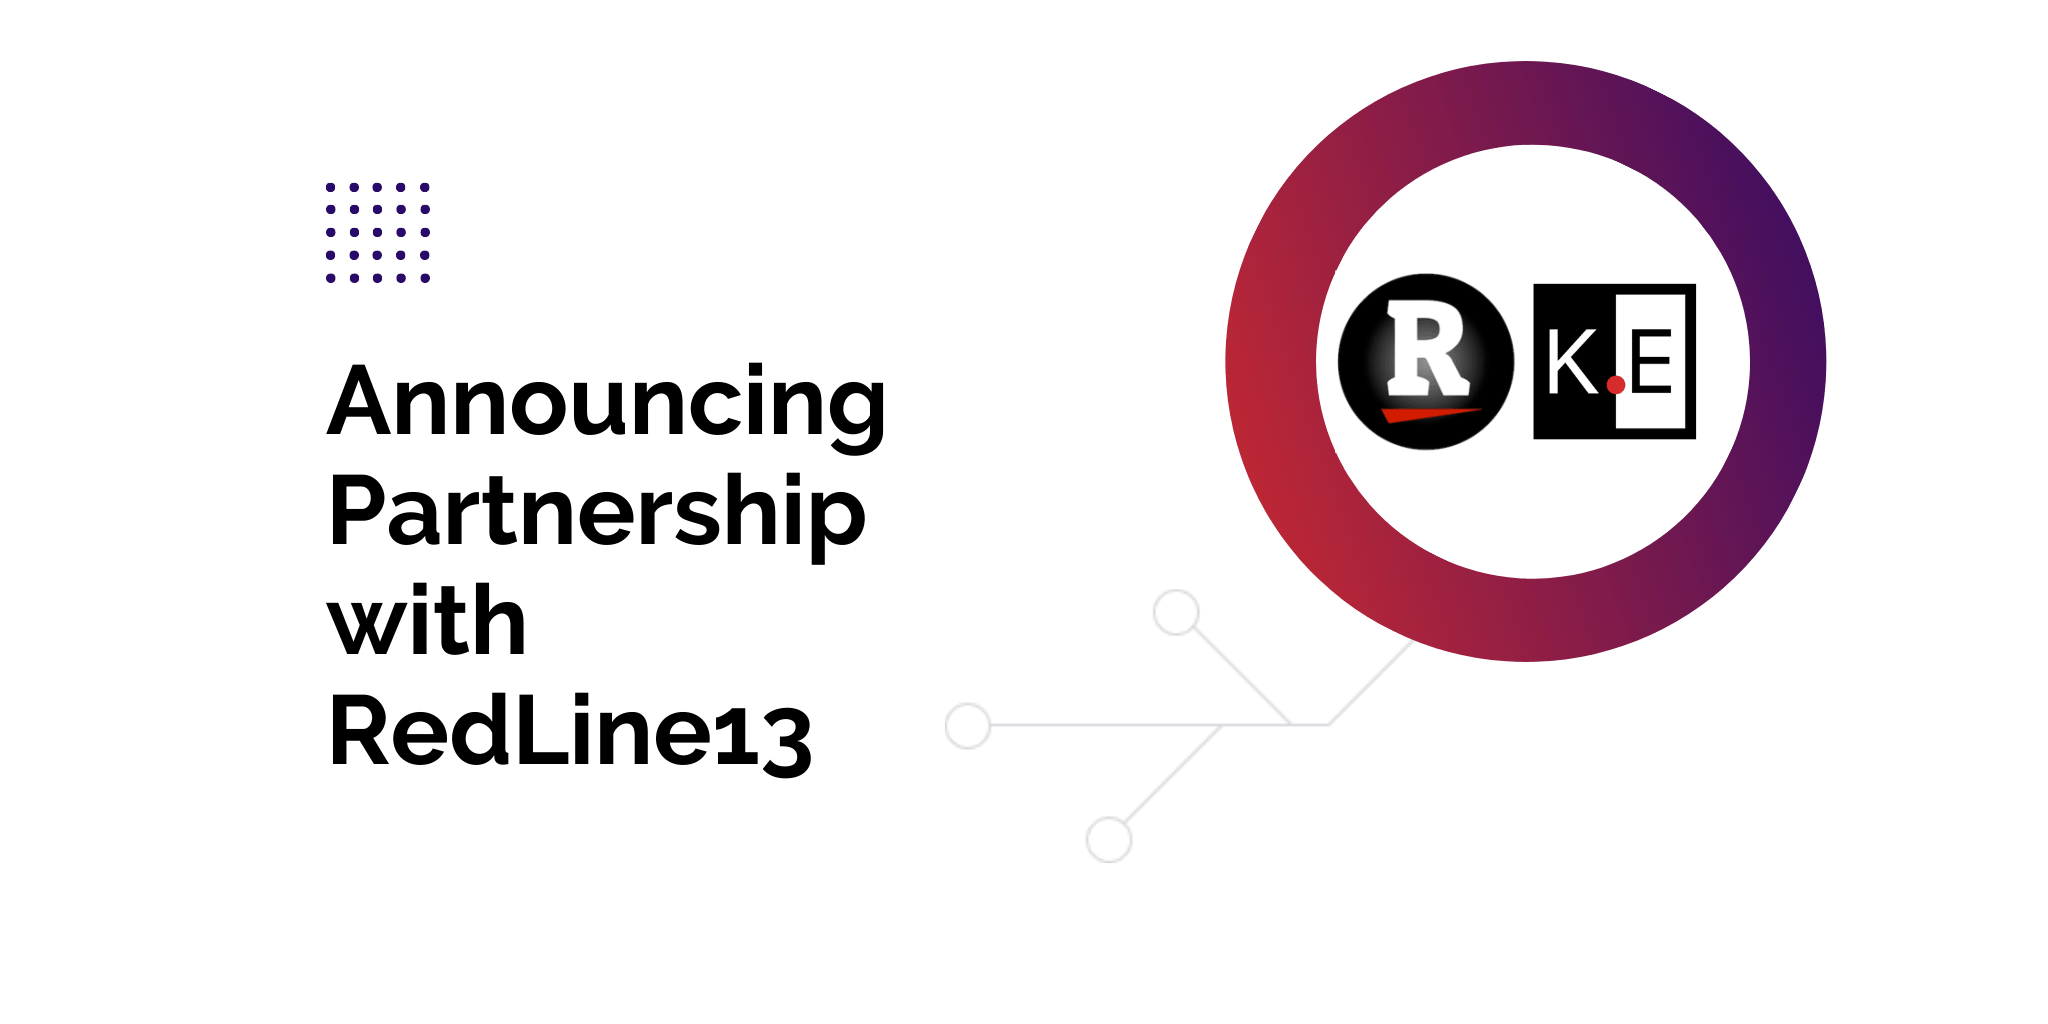 RedLine13 and KeenEthics: The Story of Our Partnership